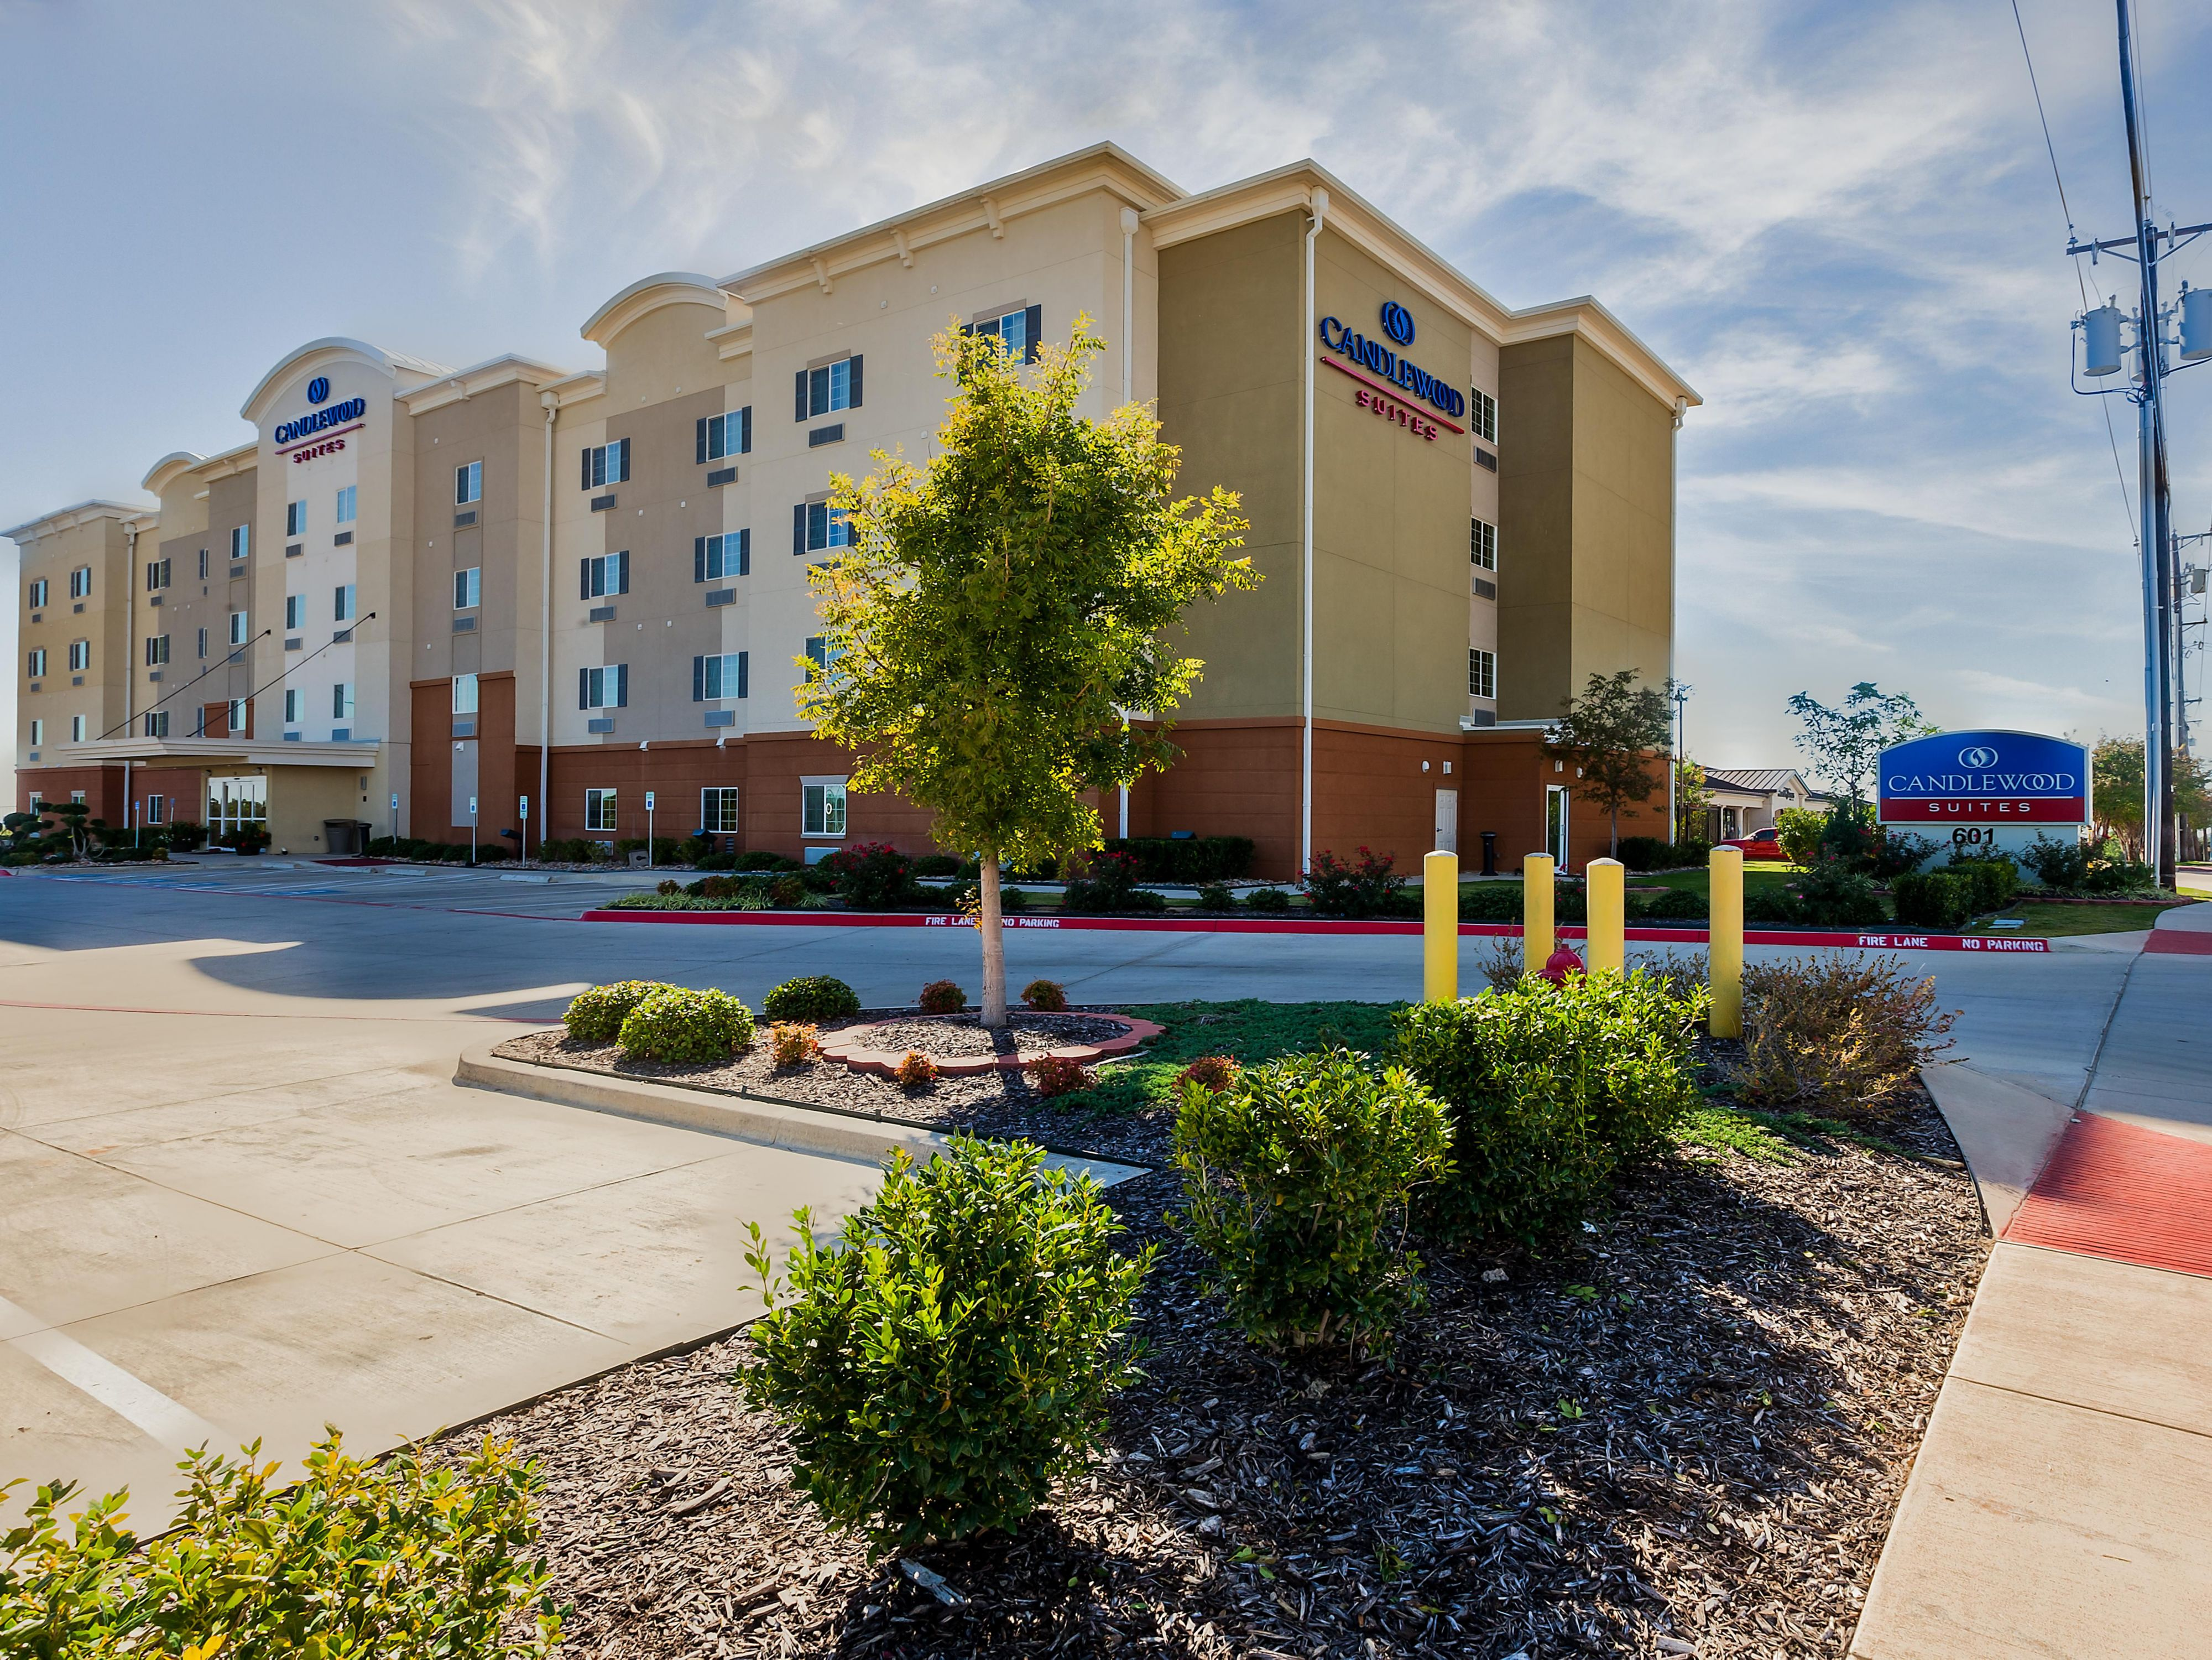 Decatur Hotels Candlewood Suites Medical Center Extended Stay Hotel In Texas